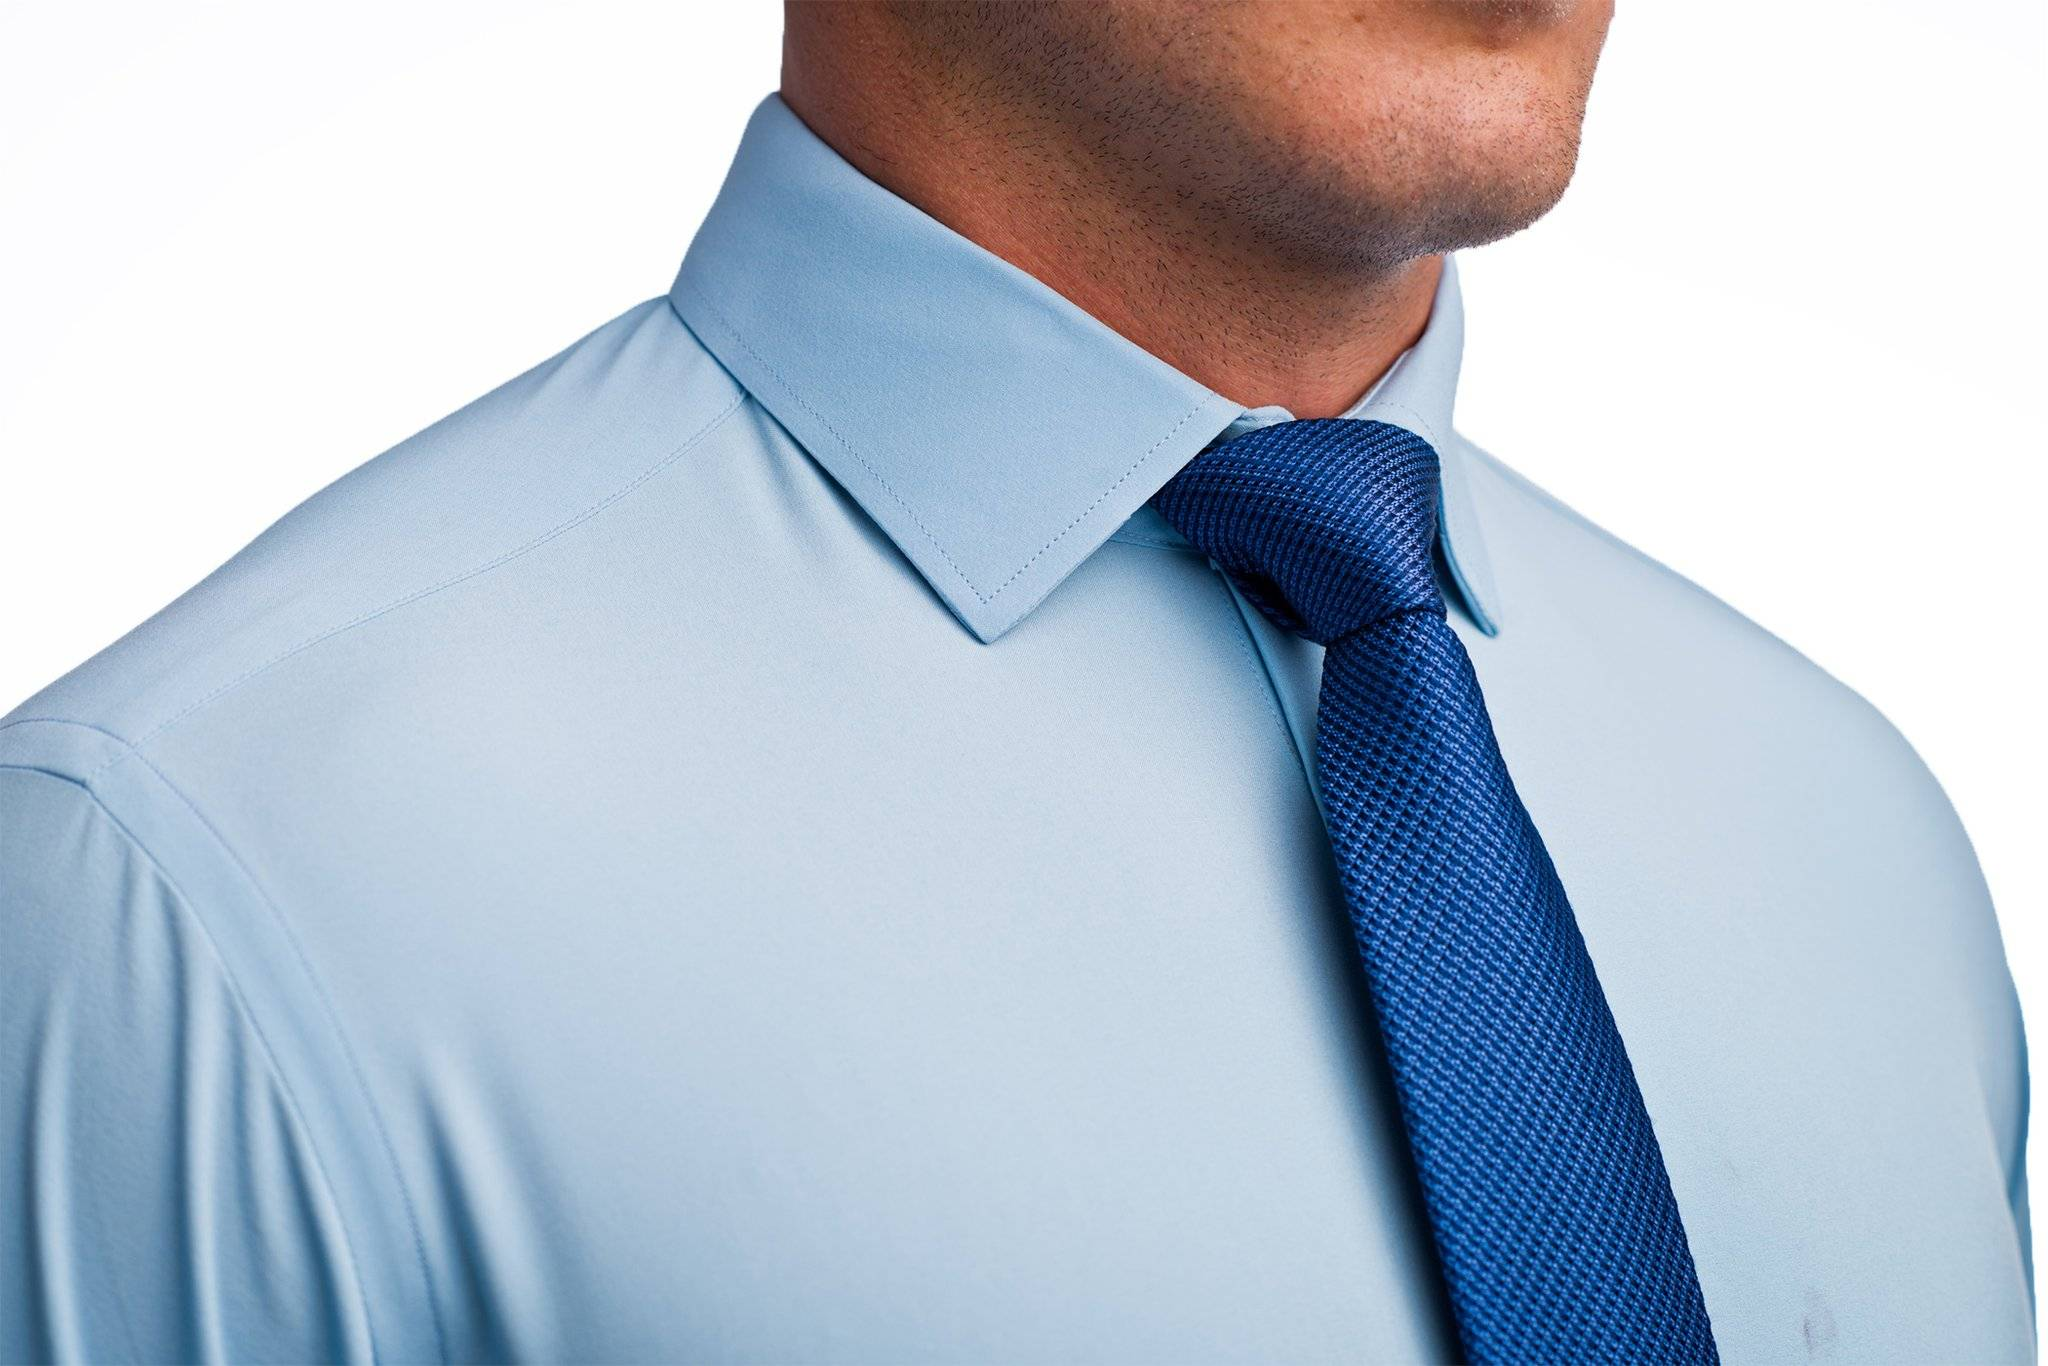 Athletic Fit Vs Slim Fit Dress Shirts Whats The Difference